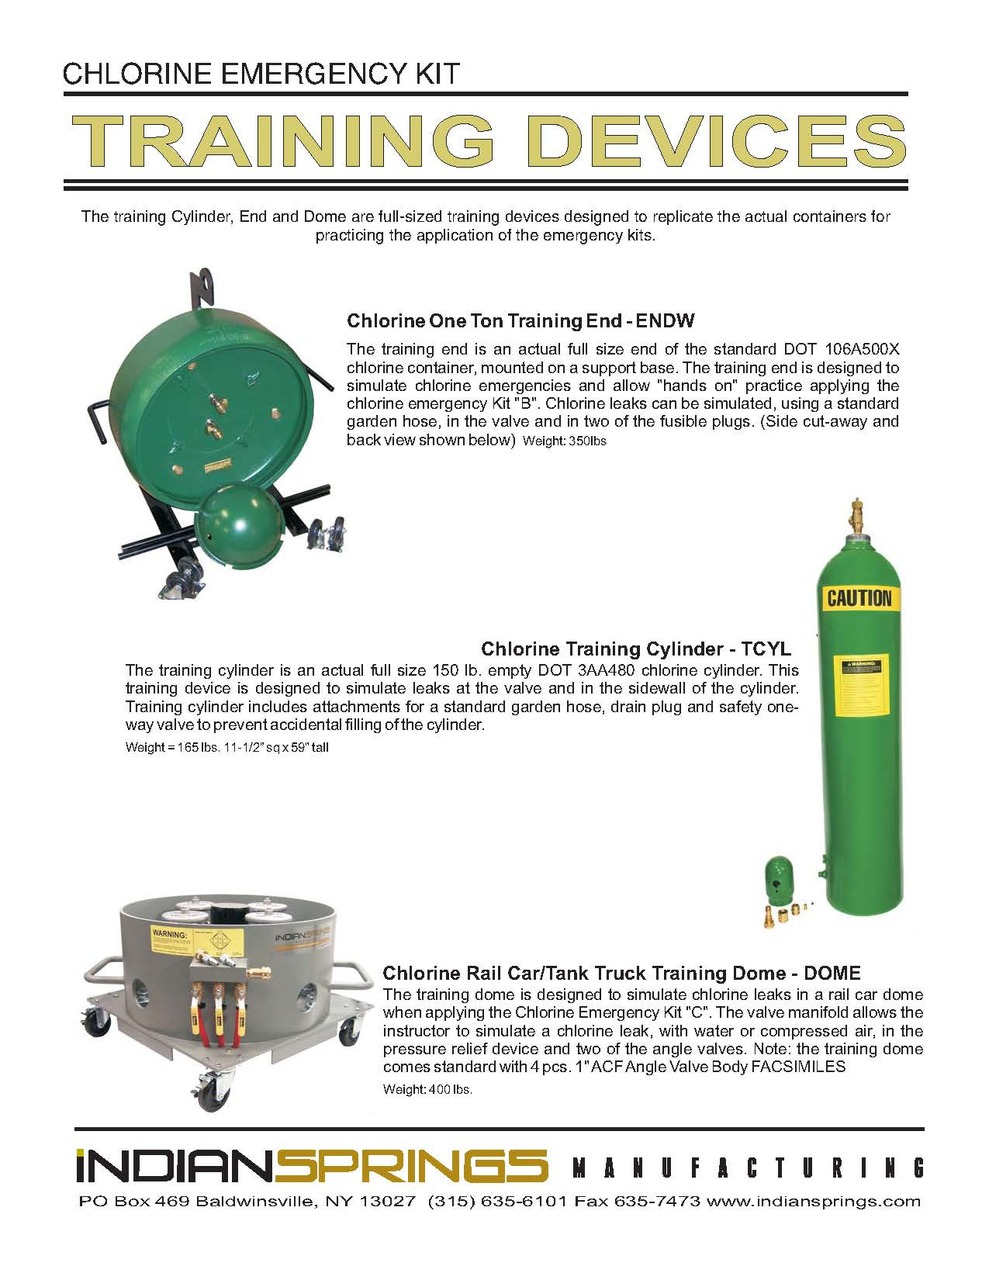 Emergency Kit Training Devices Literature | Indian Springs